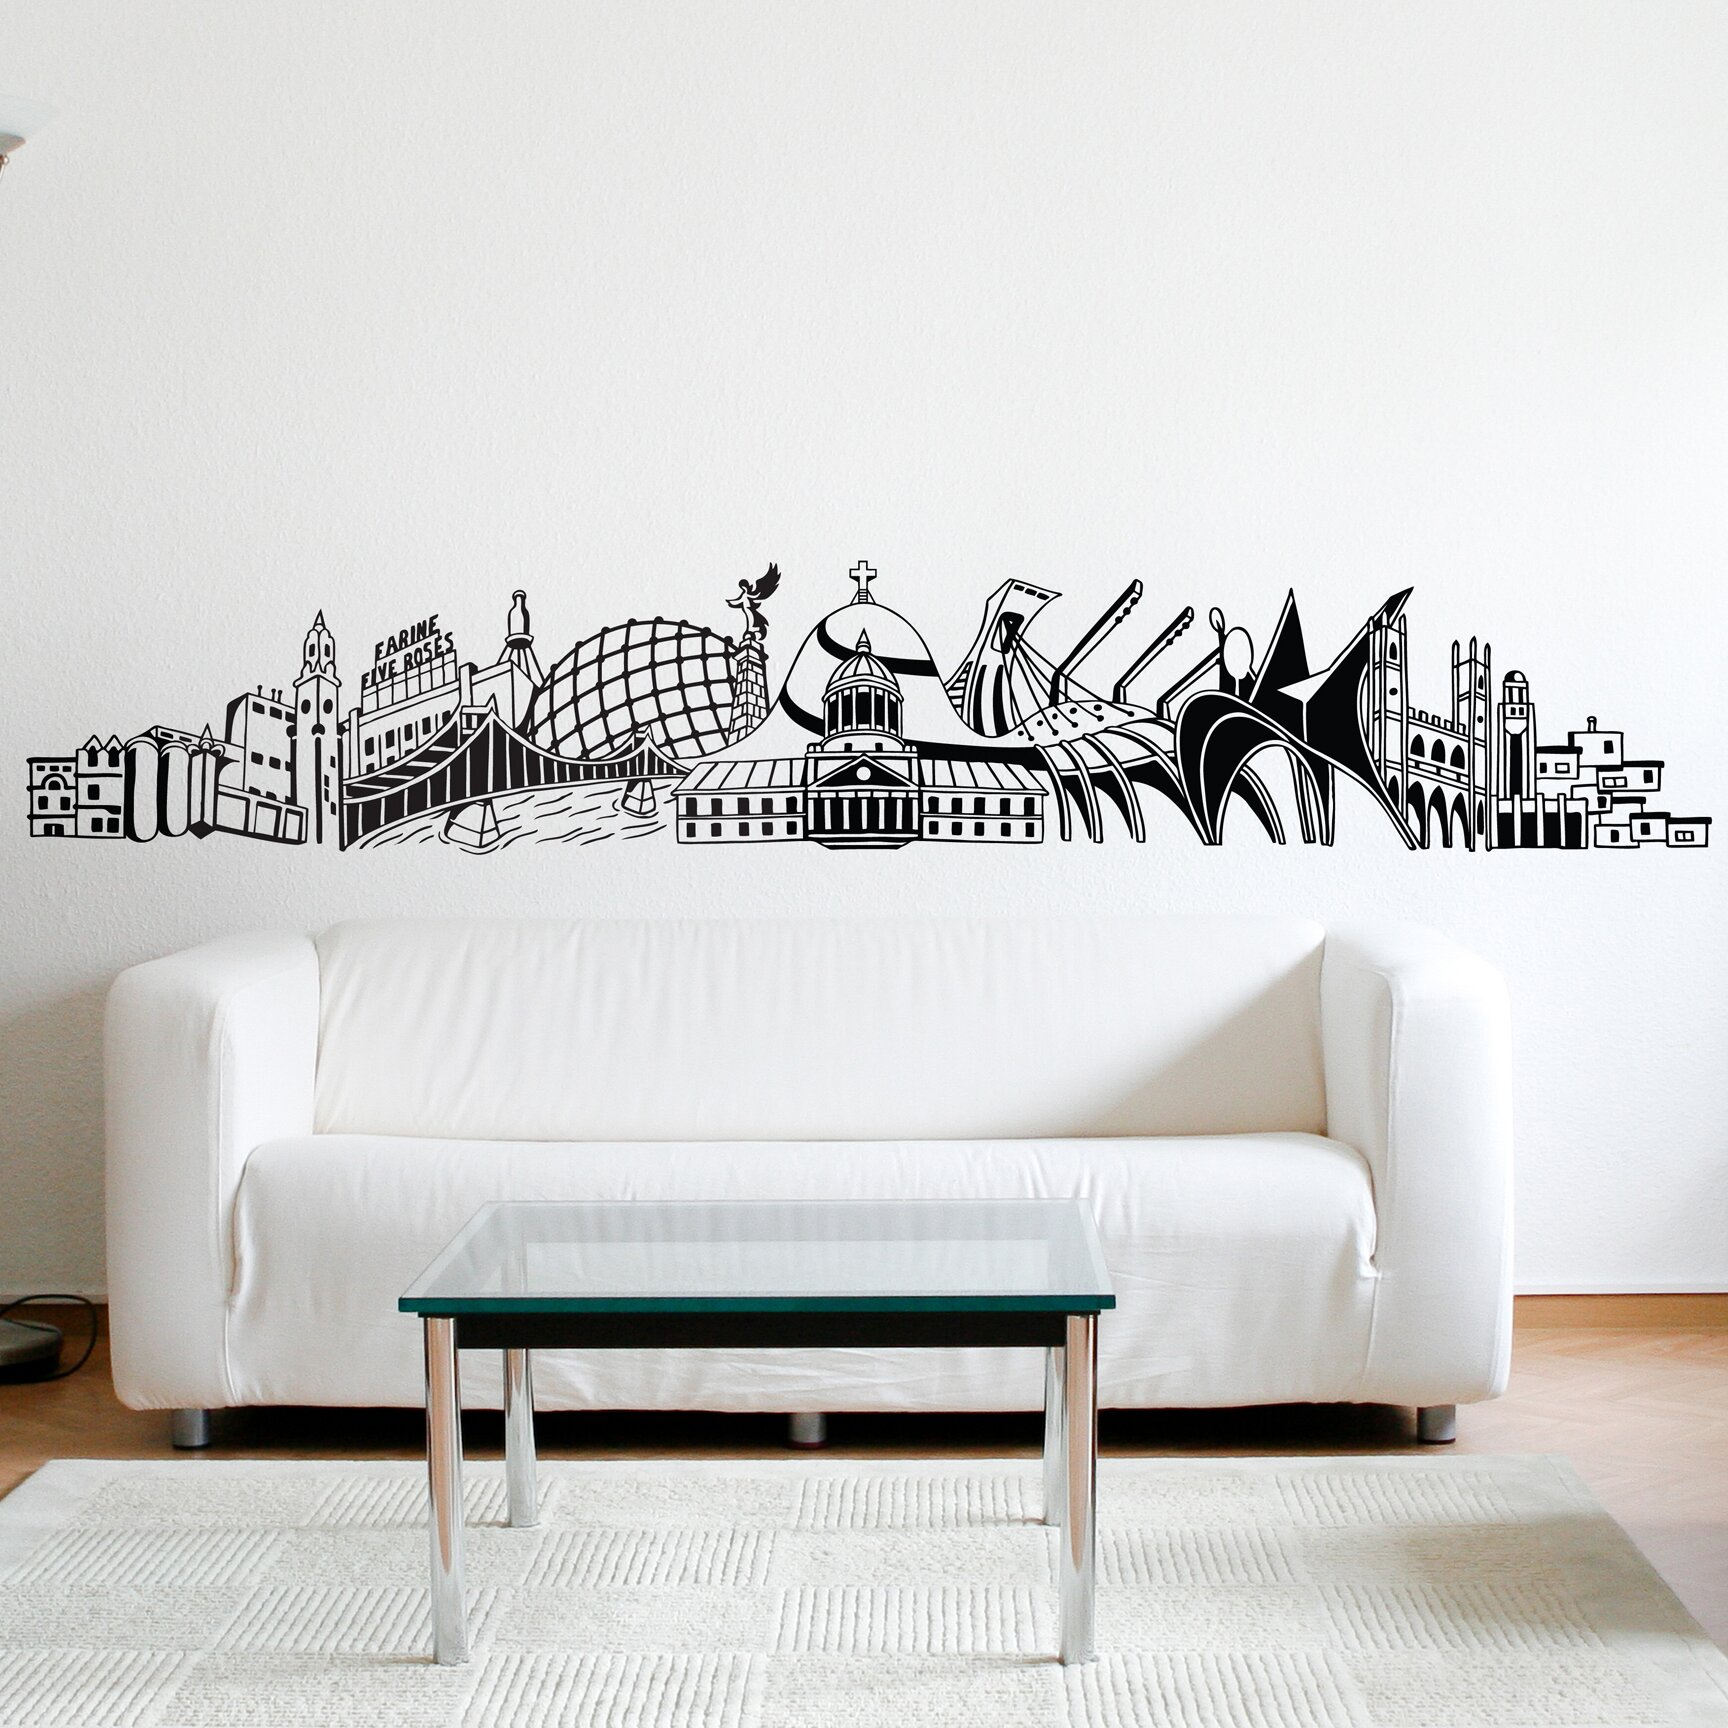 Adzif xxl into montreal wall mural wayfair for Decor mural xxl